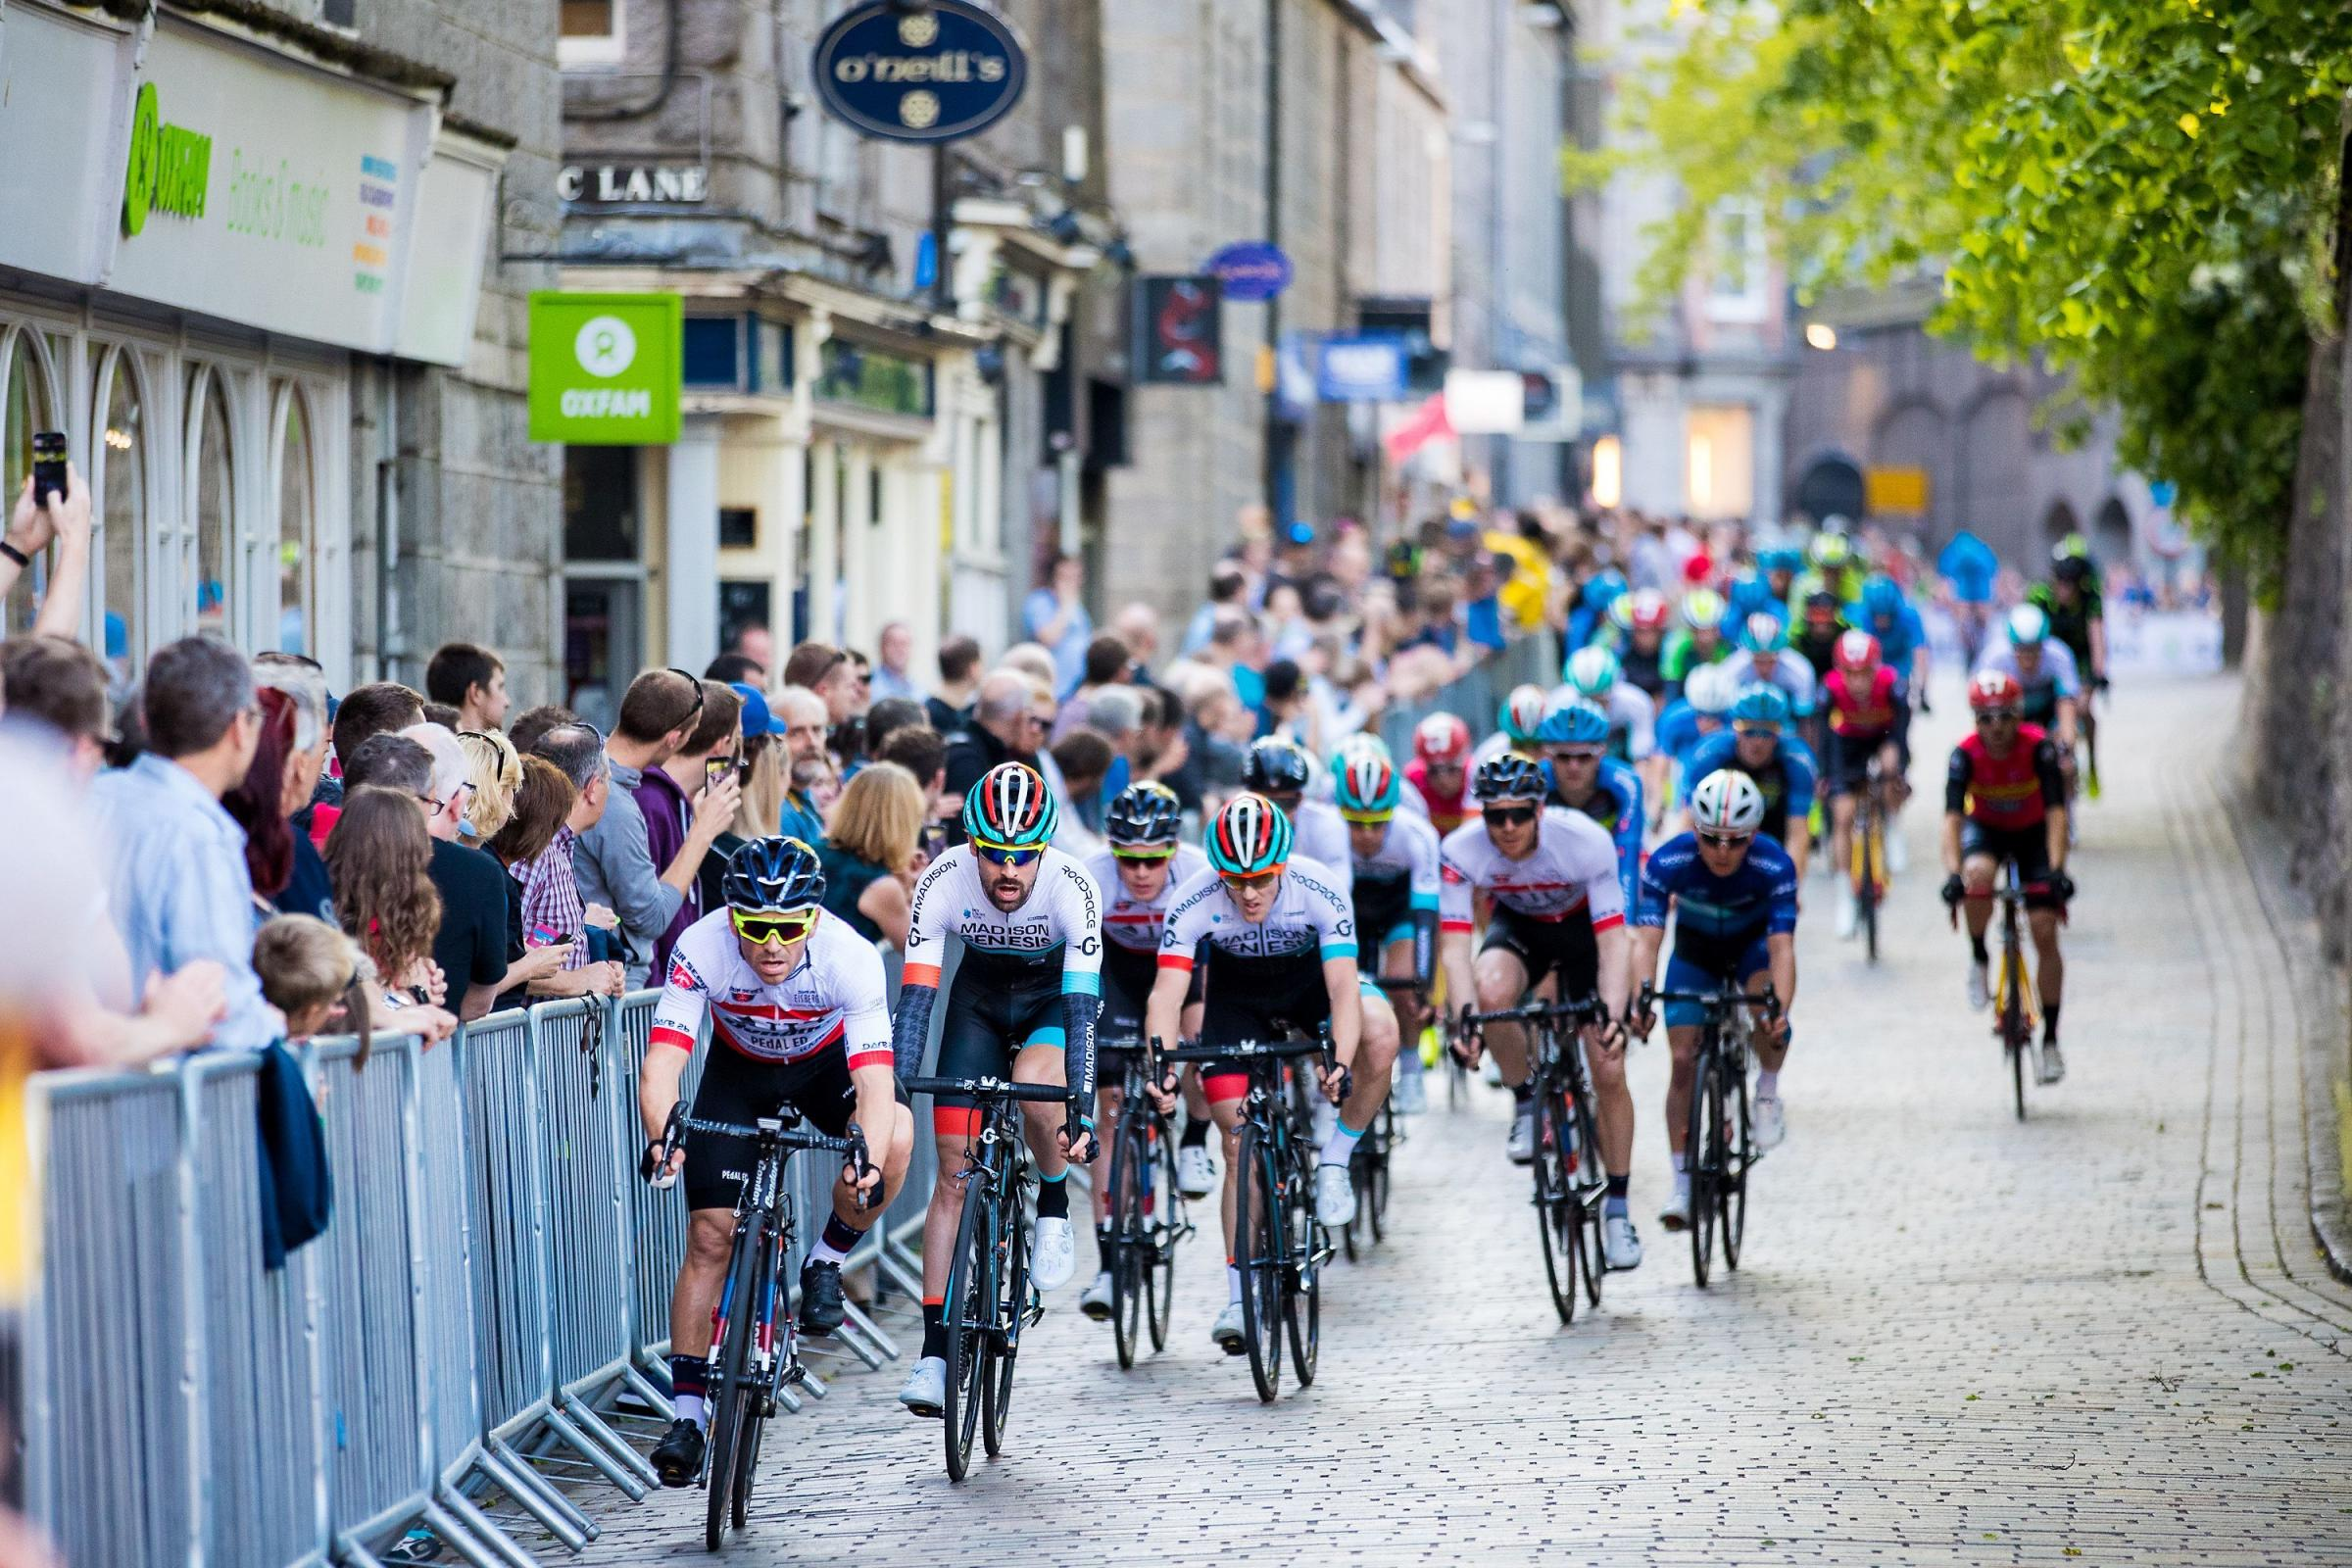 The Tour Series makes its way through Aberdeen during round 8 – the grand final will be in Salisbury on May 31